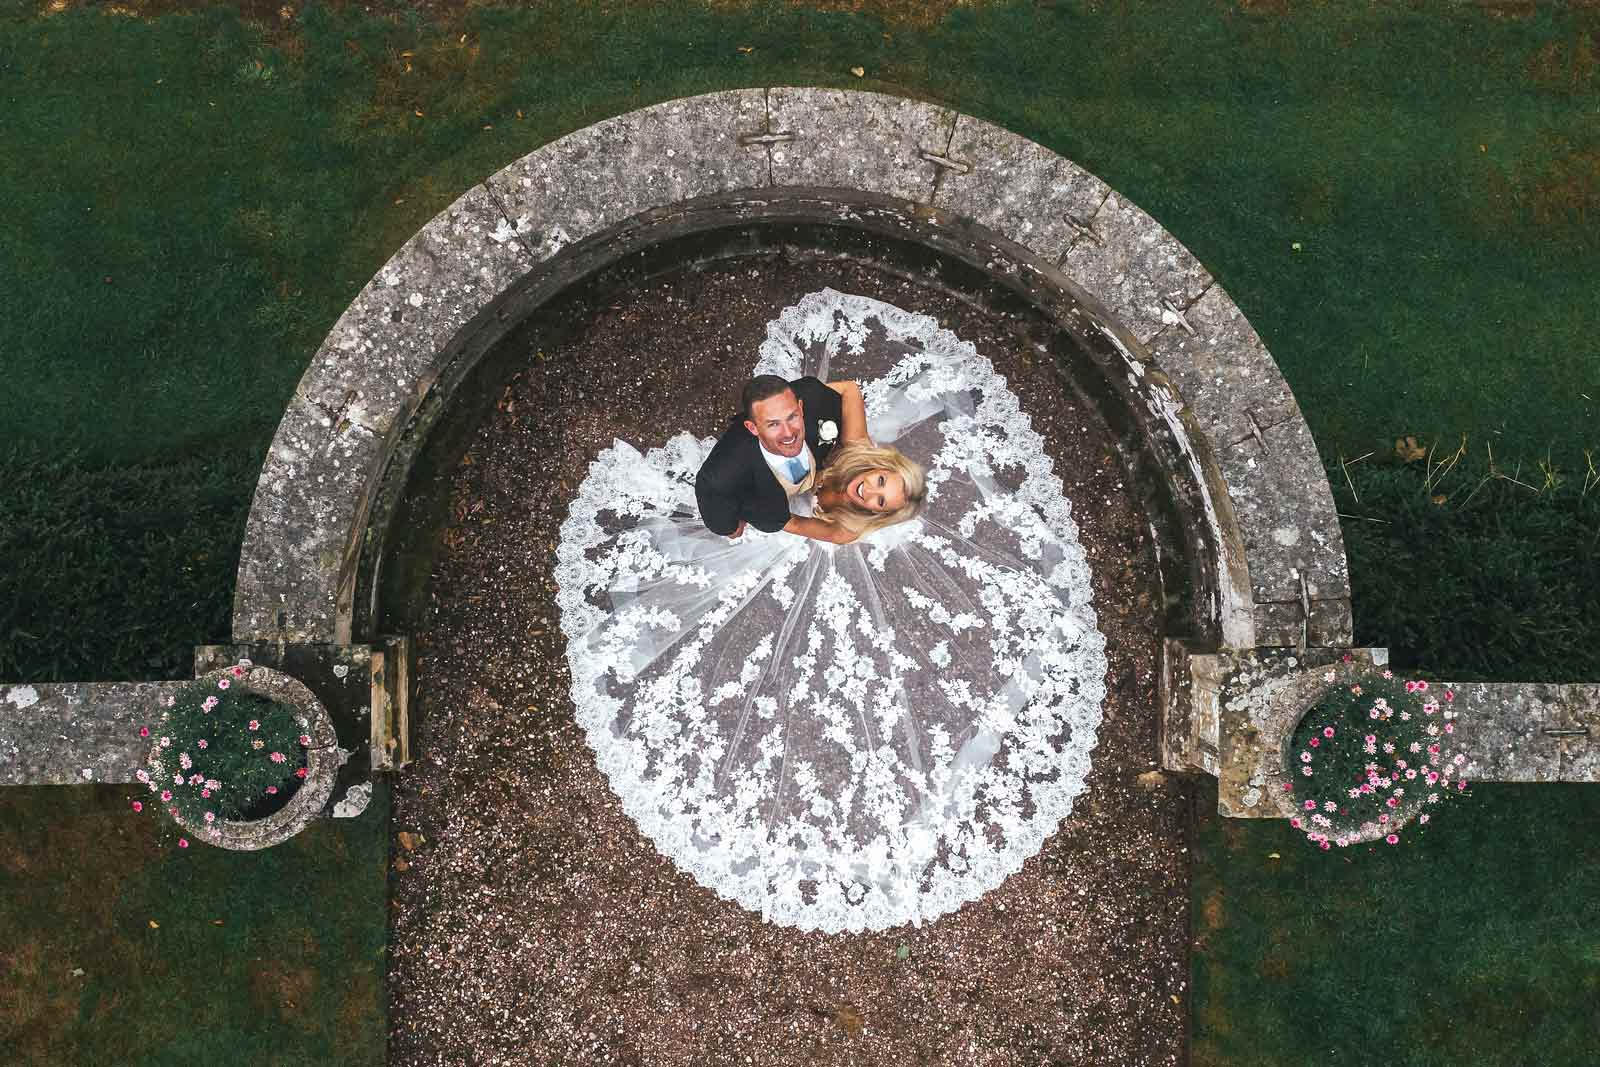 Bride and groom look up, as the drone takes the photo. The brides lace train covers where the couple is standing